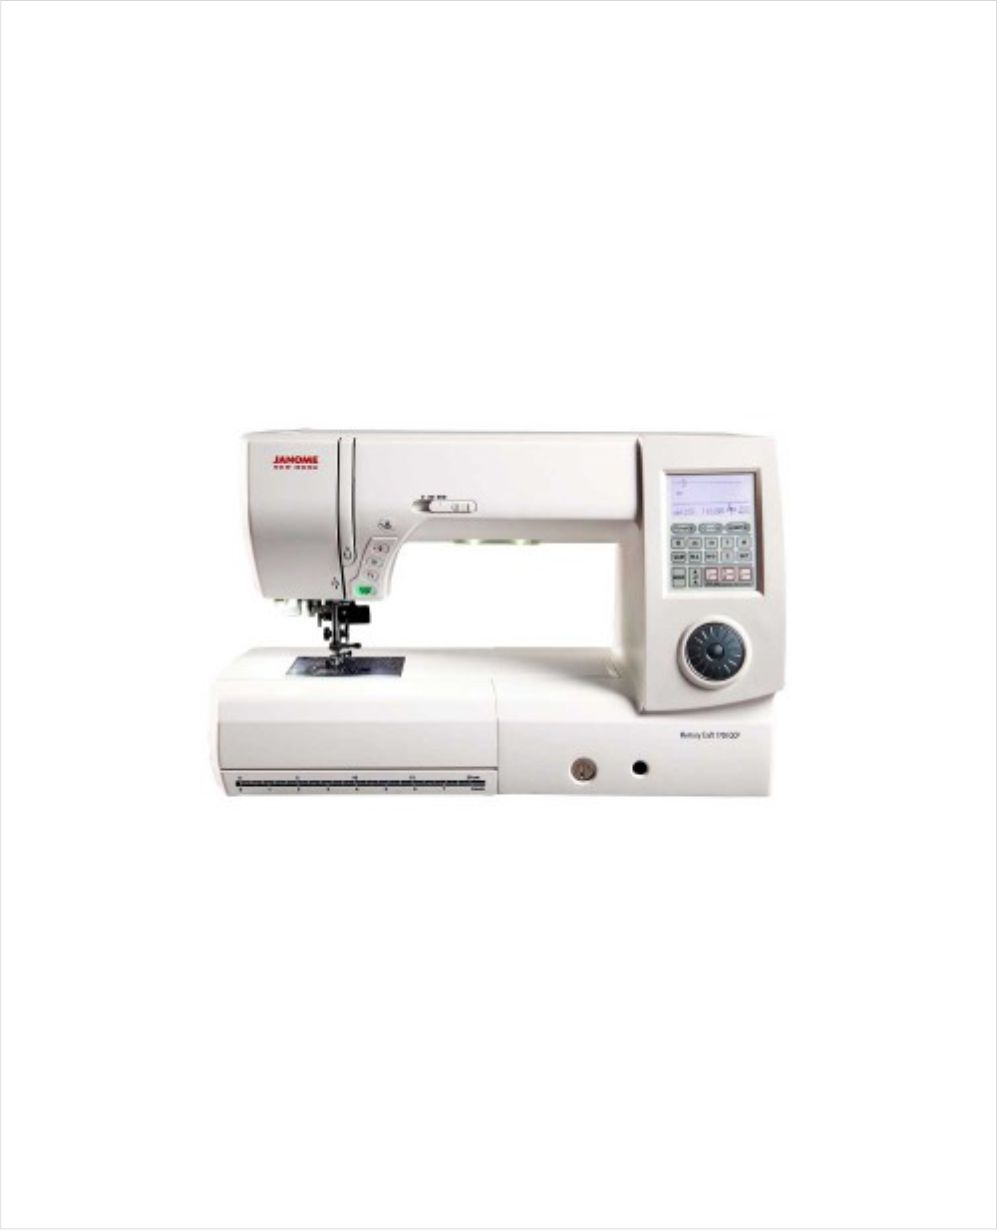 brother qc 1000 sewing machine review